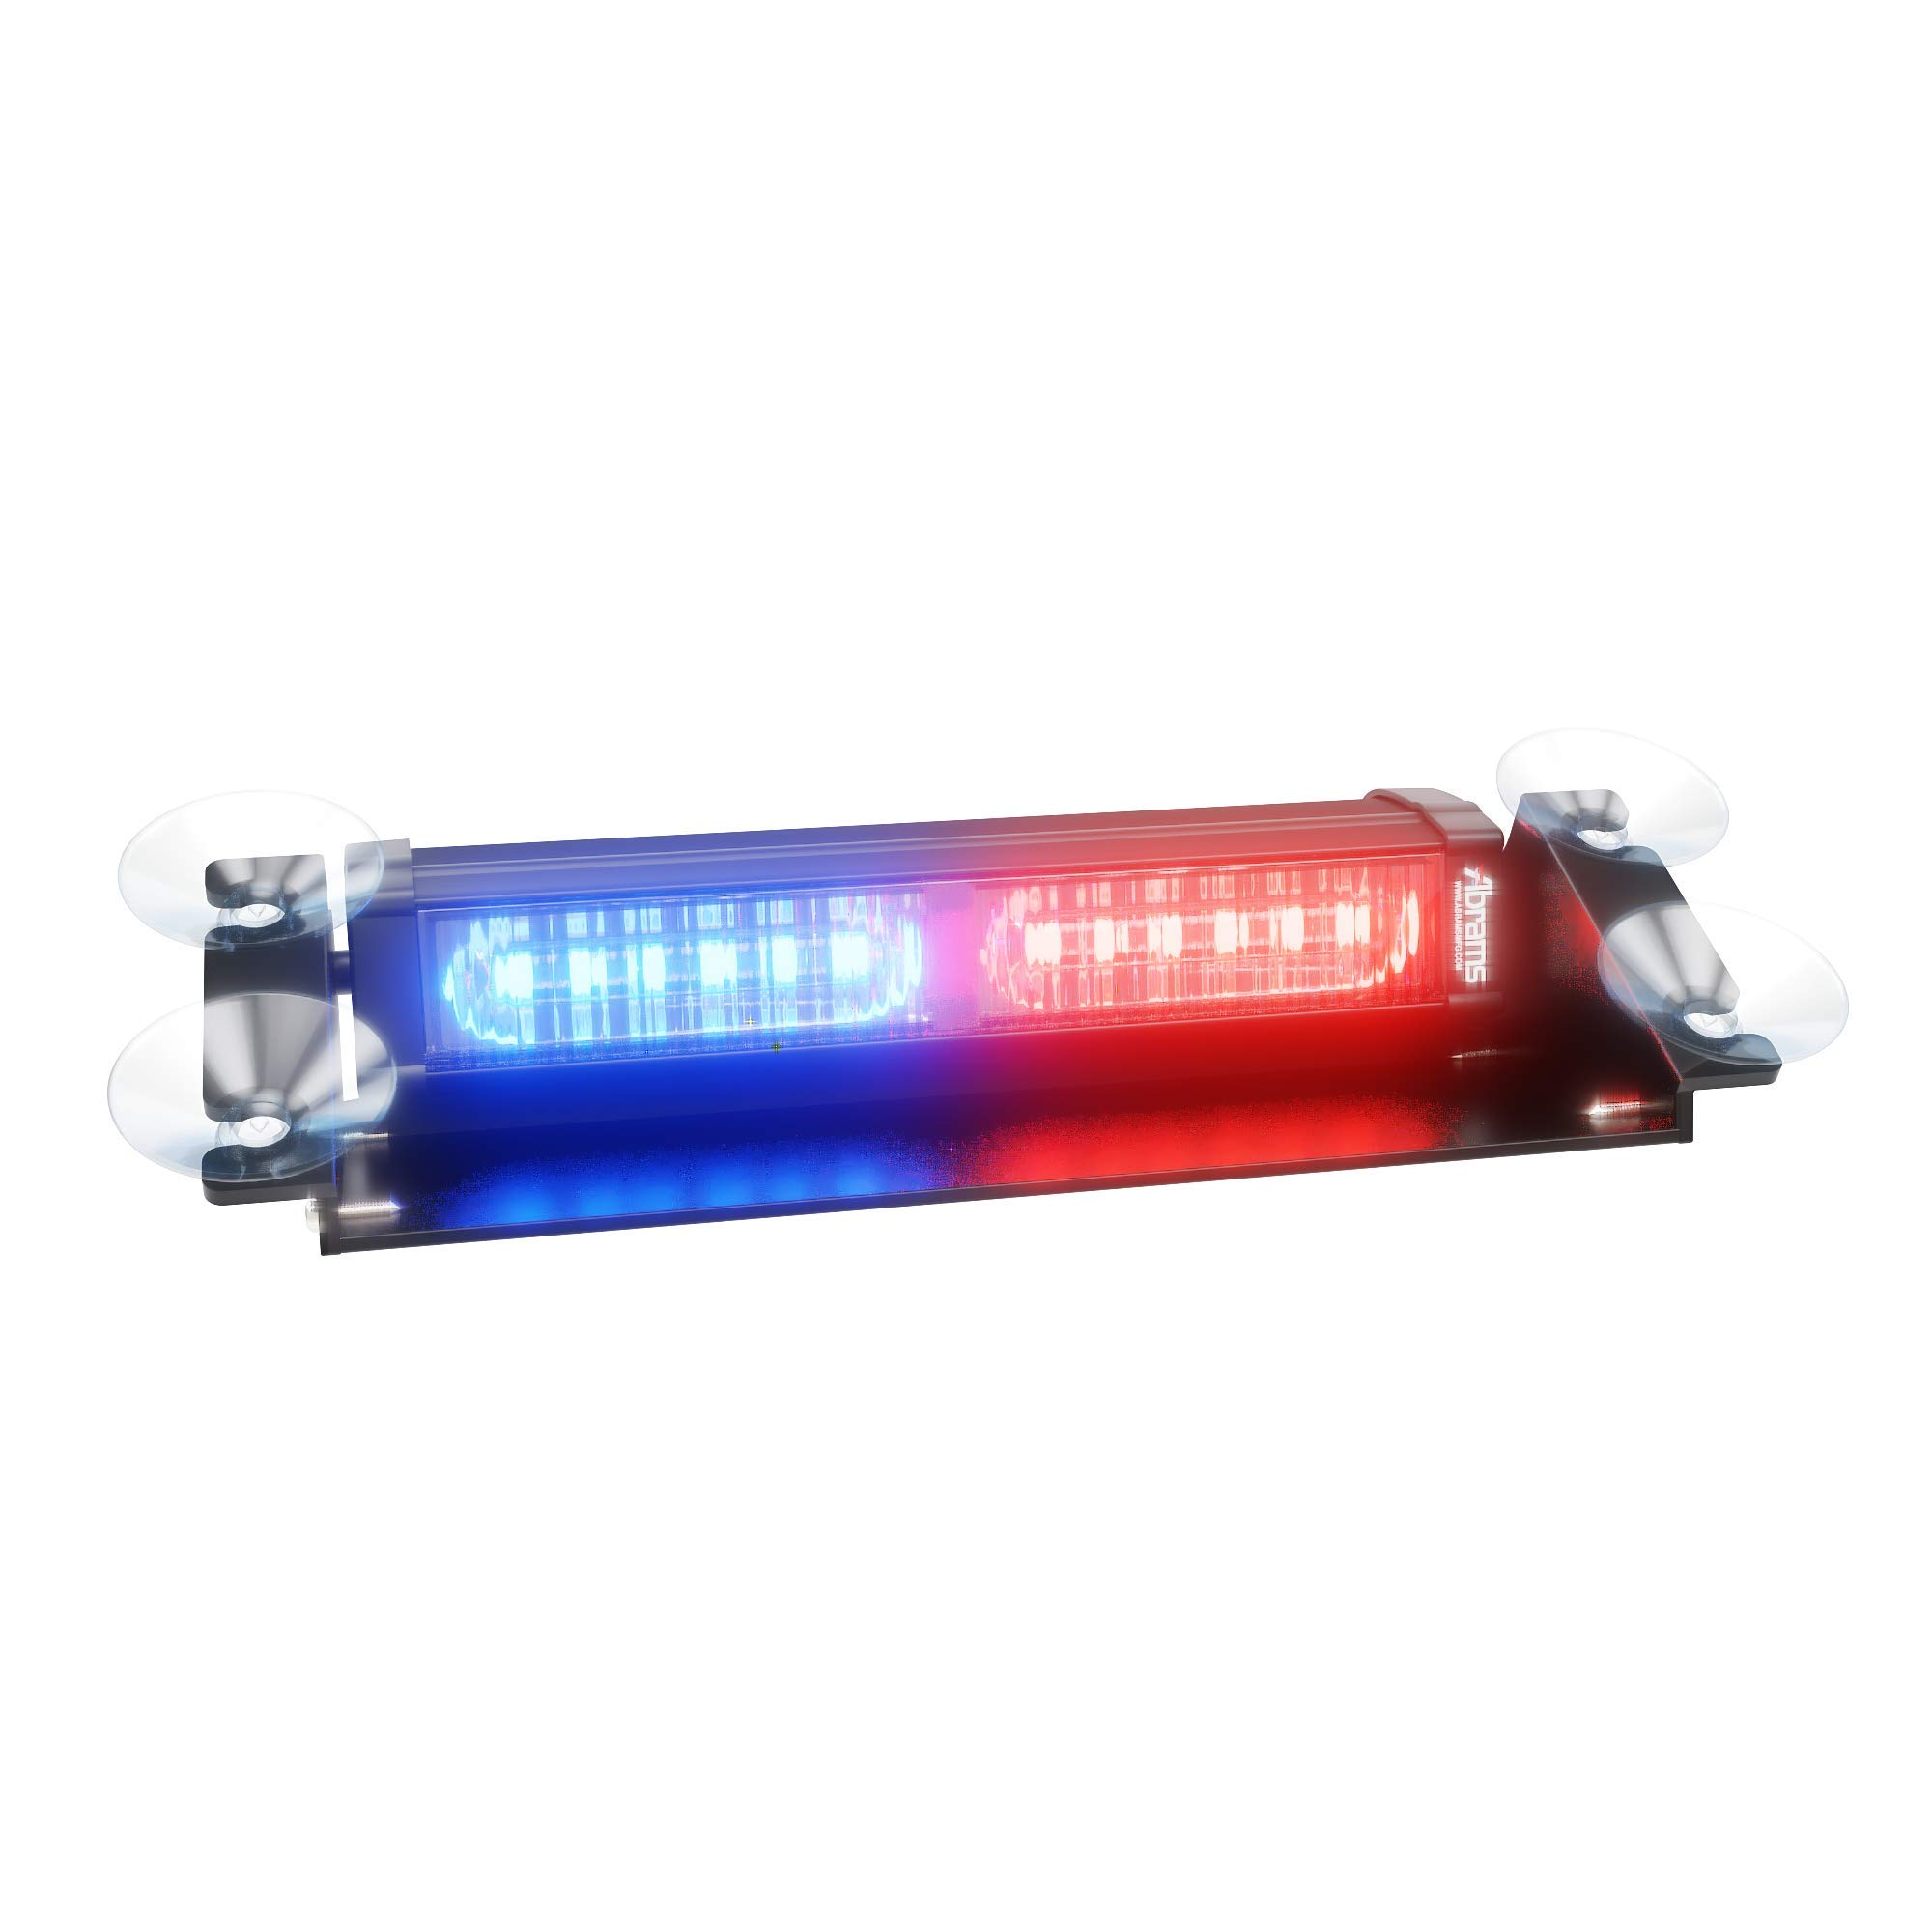 Abrams Focus 2X Series (Red/Blue) 36W - 12 LED Police Vehicle Truck Windshield Strobe Warning Dash & Deck Light Bar